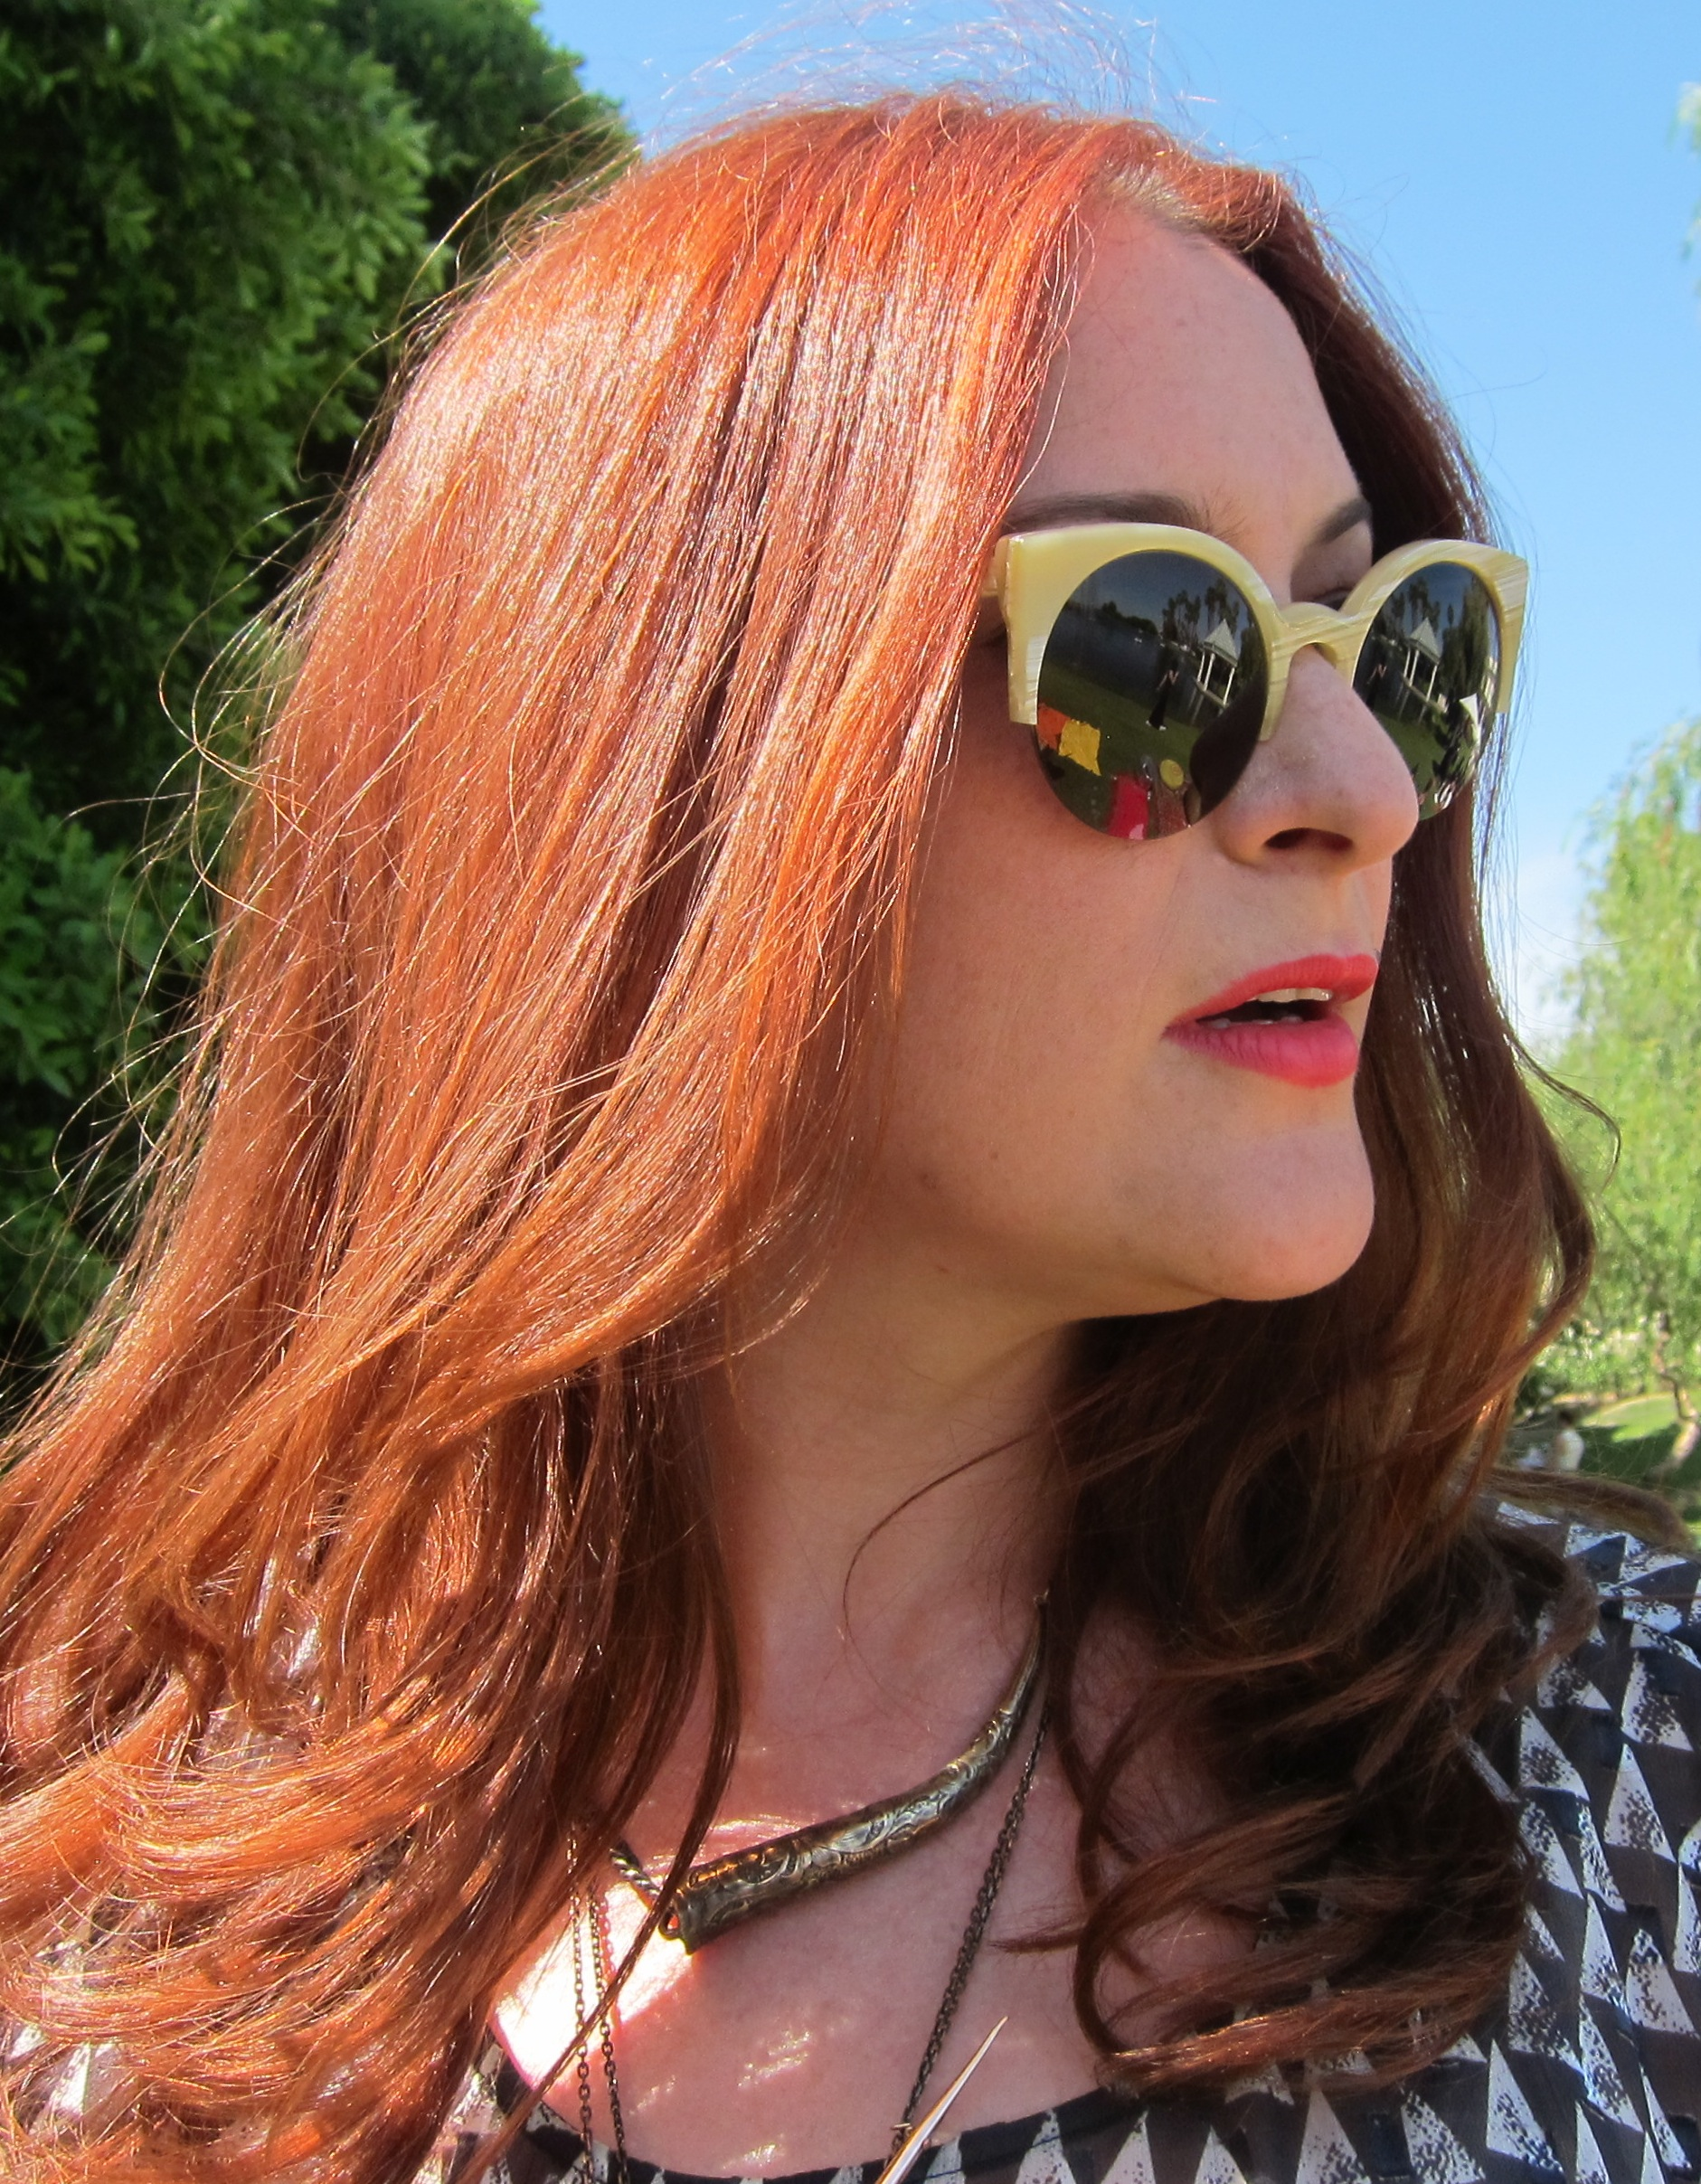 Red hair with red lipstick is twice as nice. Photo: Meg Cuna